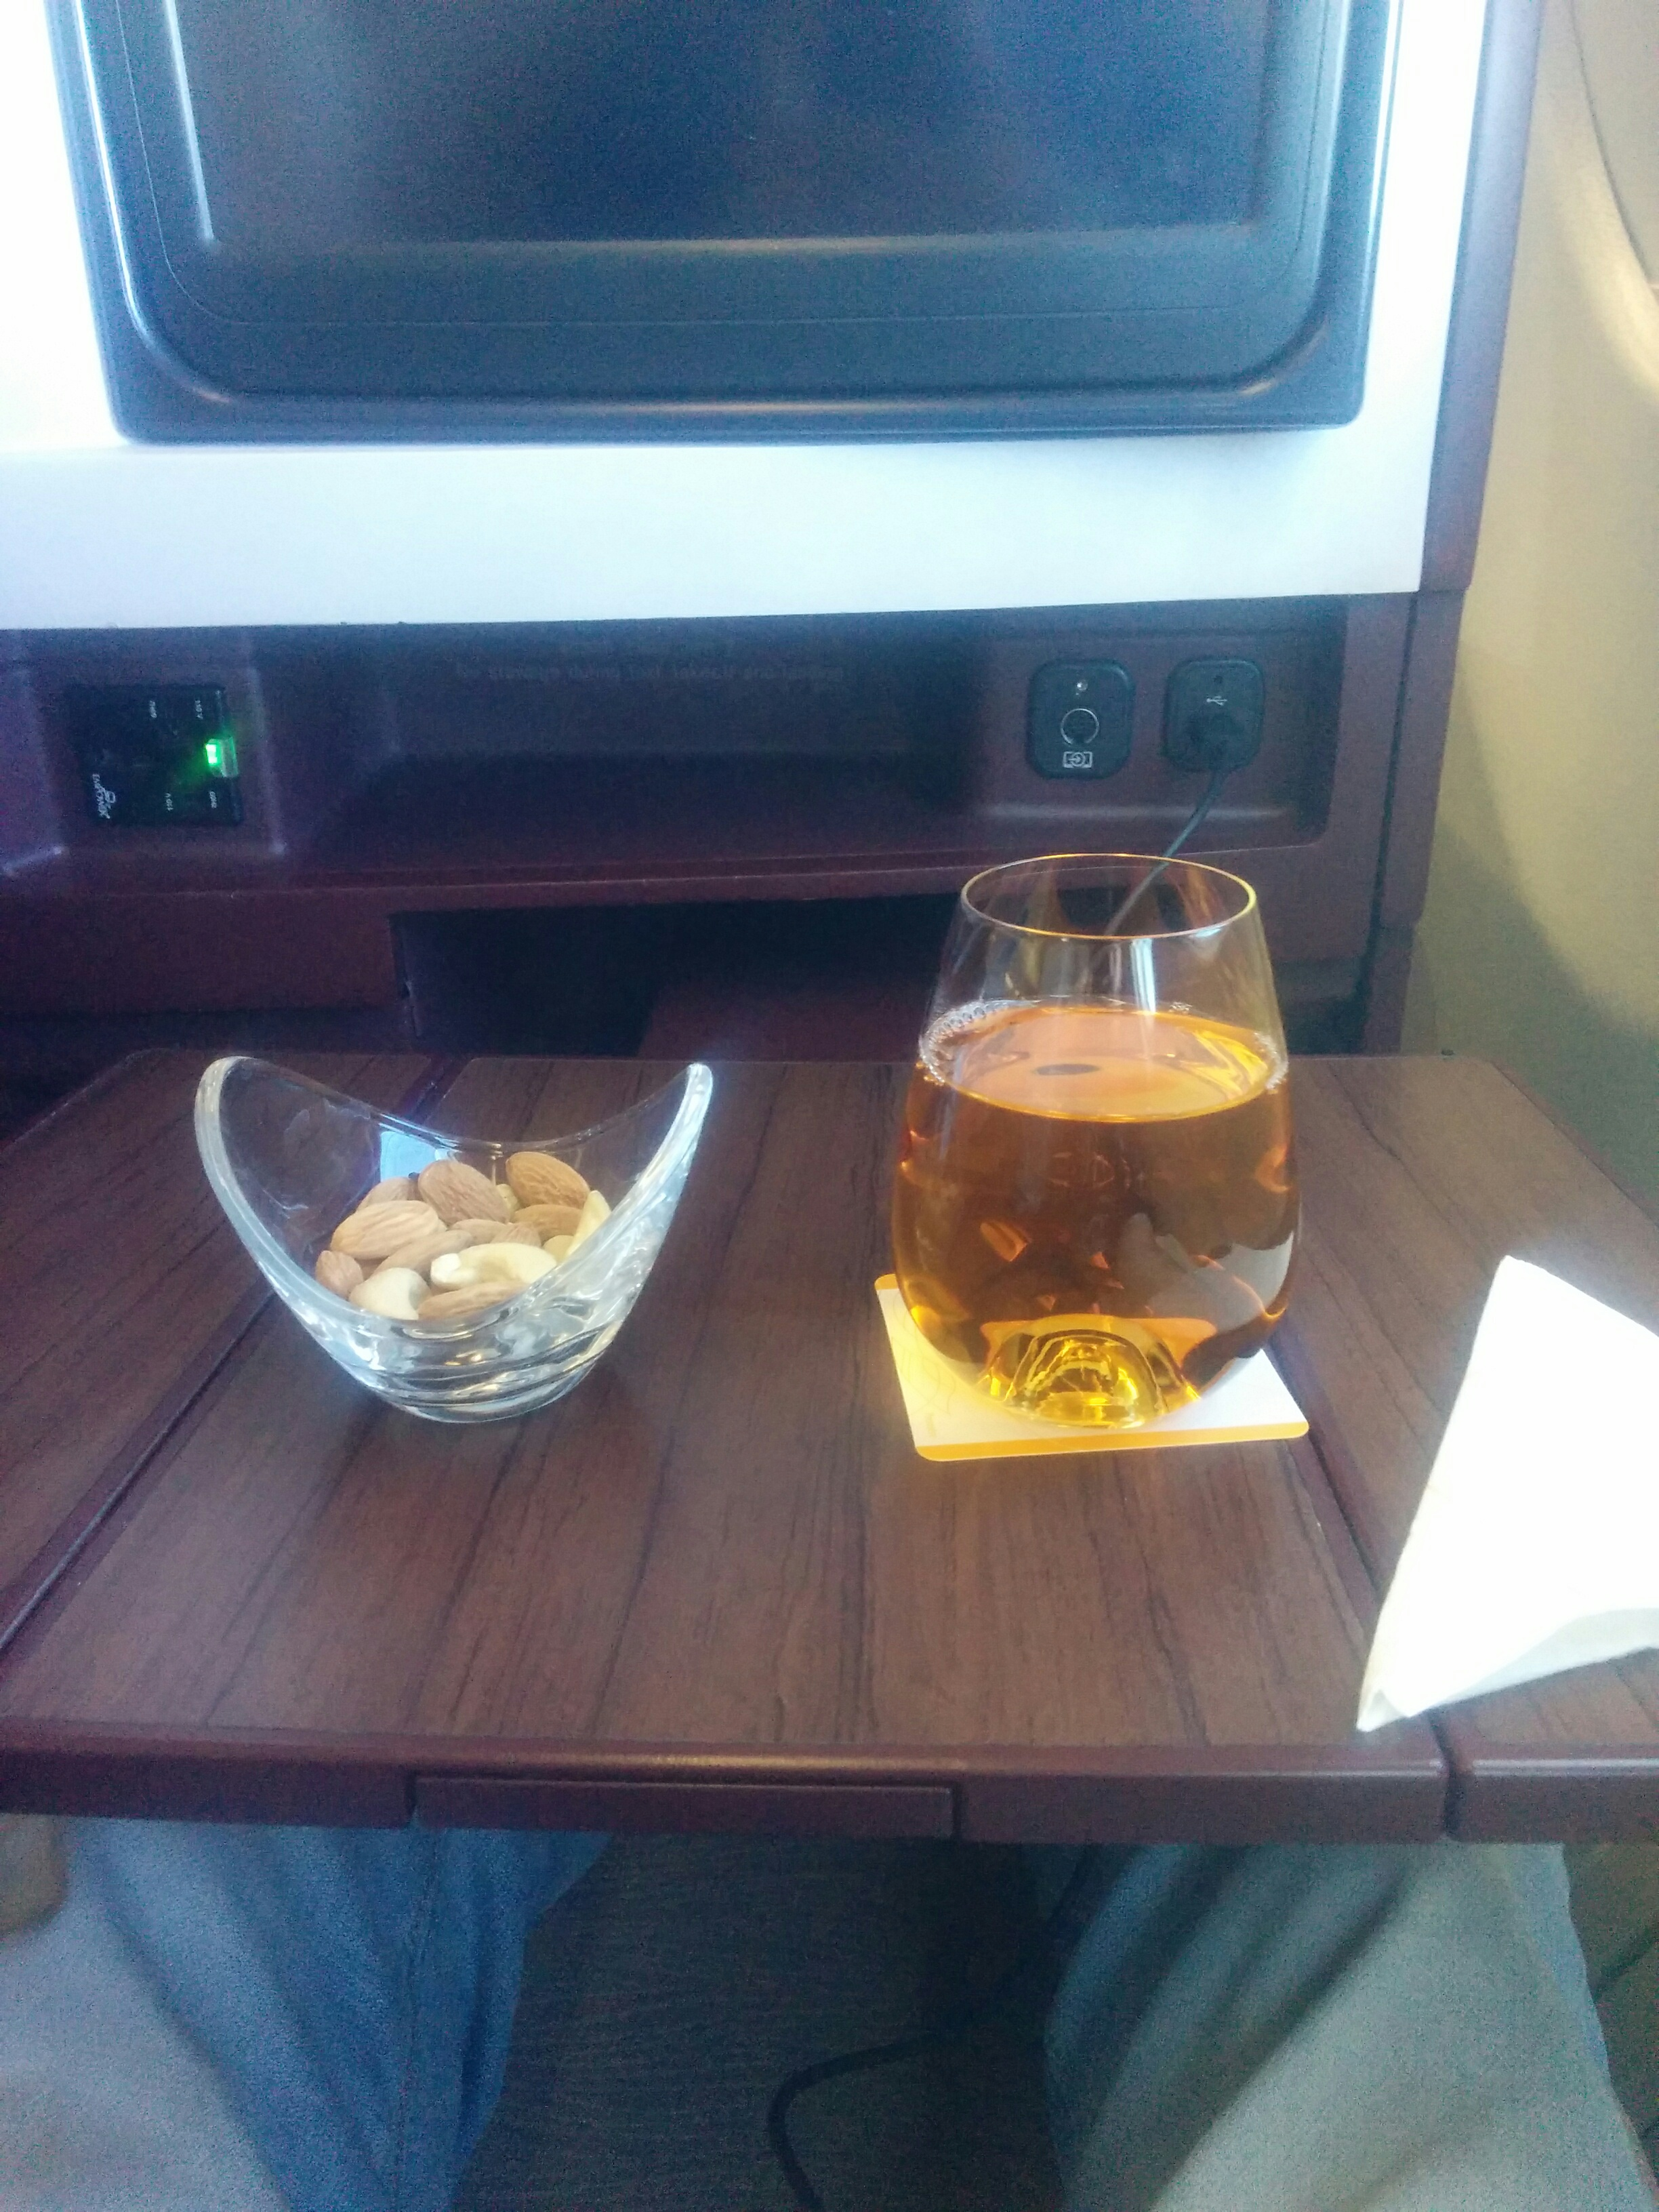 Apple Juice and Nuts in Business Class - Jet Airways